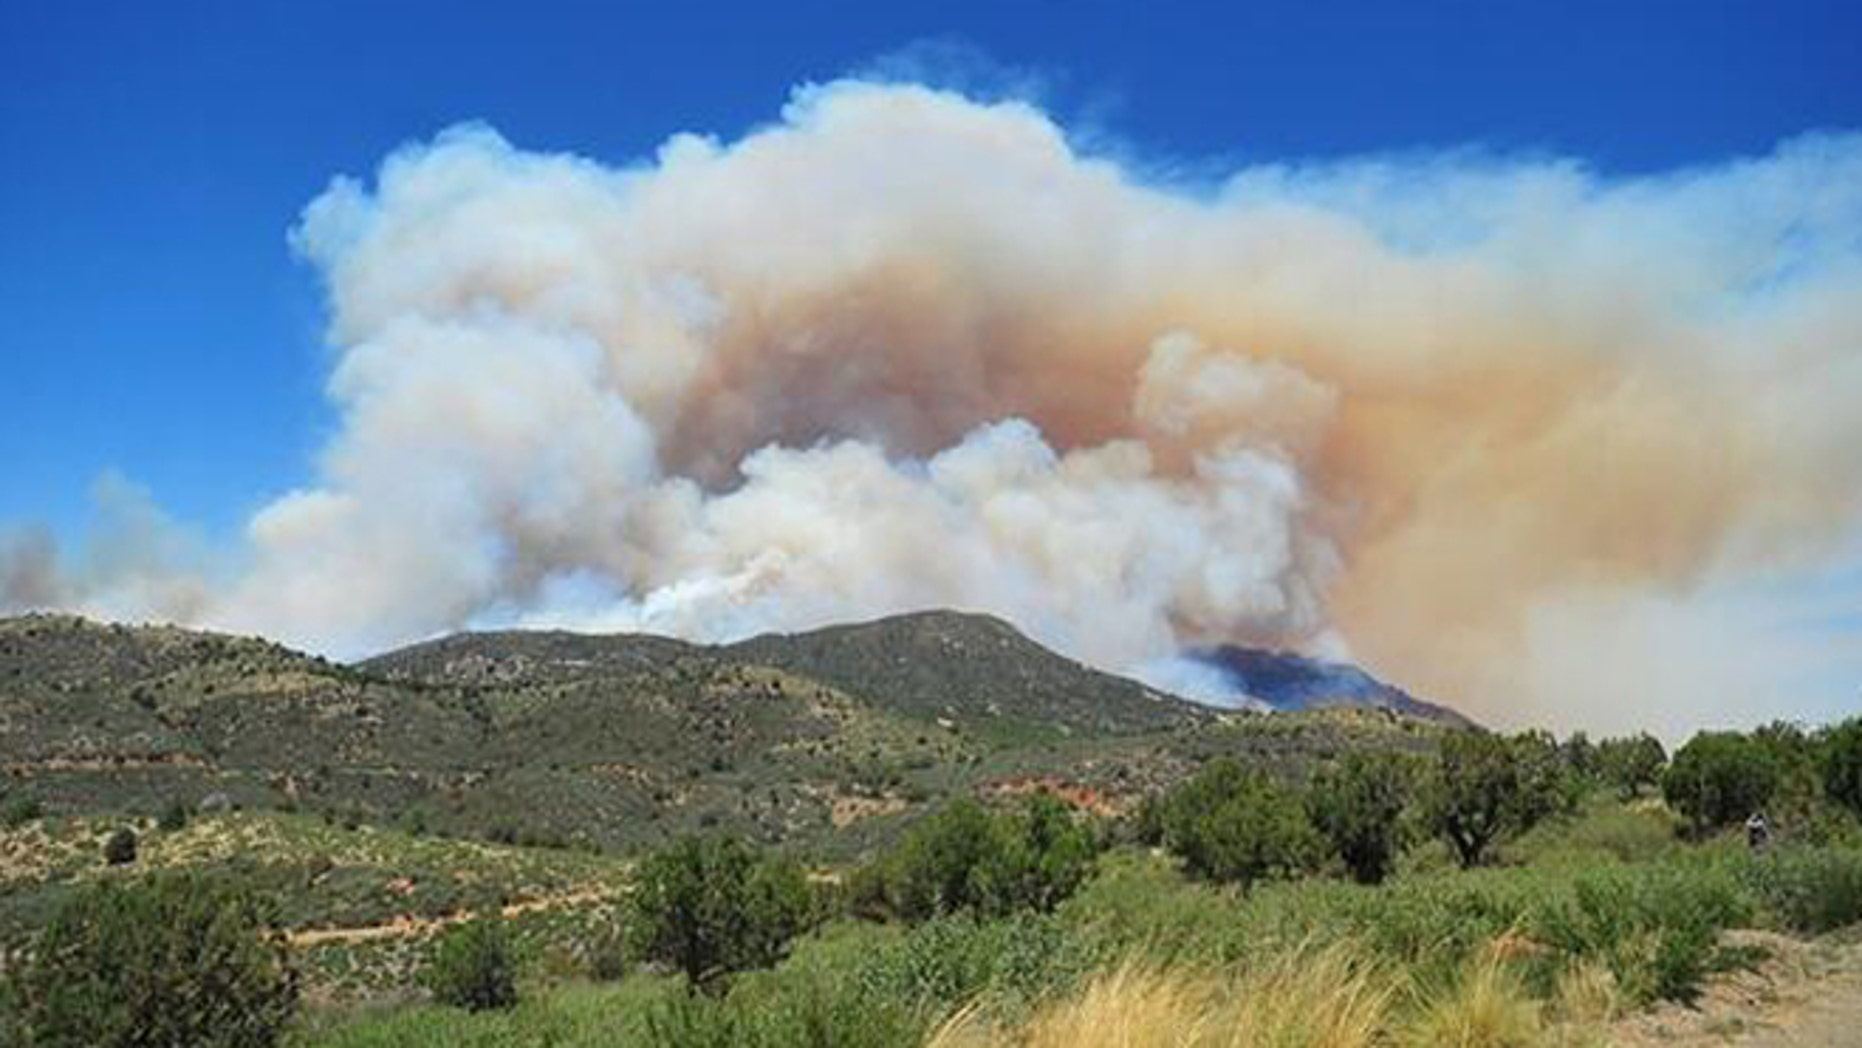 June 18, 2013: Smoke rises as the Doce Fire burns near Prescott, Ariz. on Tuesday. County sheriff's officials say the wildfire began midday Tuesday near the Doce Pit about eight miles northwest of Prescott. Wind gusts of up to 22 mph pushed the fire from 20 acres to about 200 within an hour.